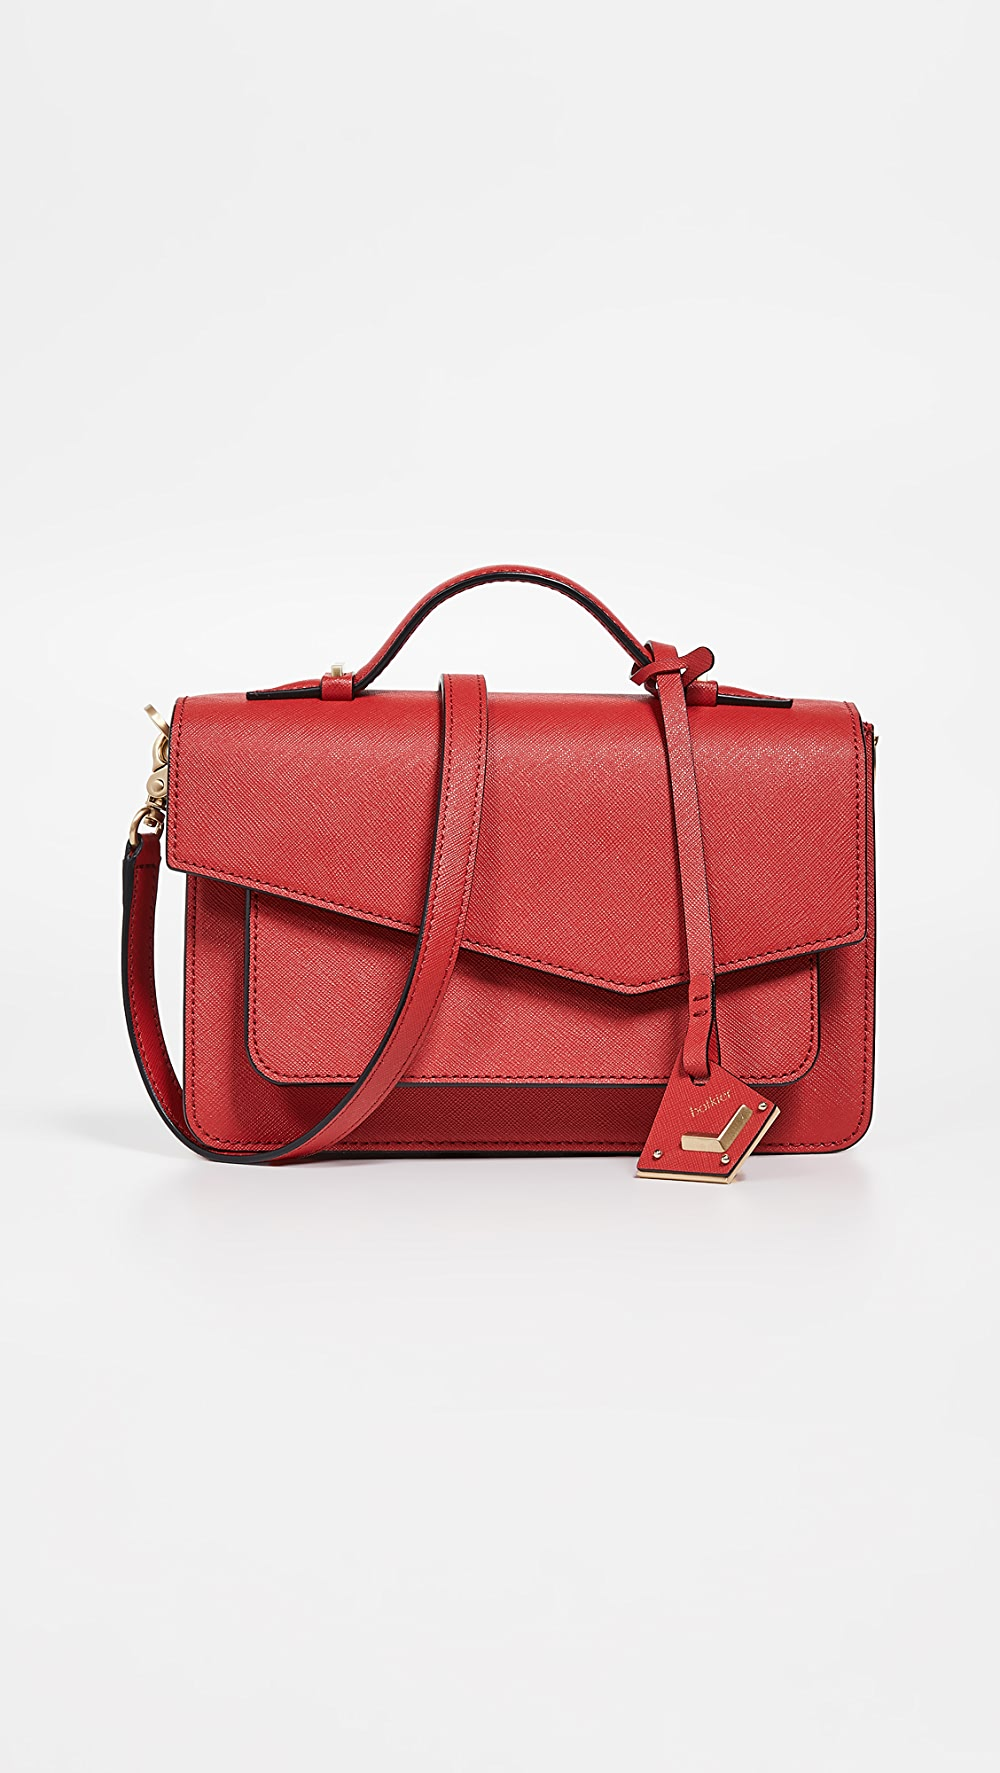 100% Quality Botkier - Cobble Hill Crossbody Bag Refreshing And Enriching The Saliva